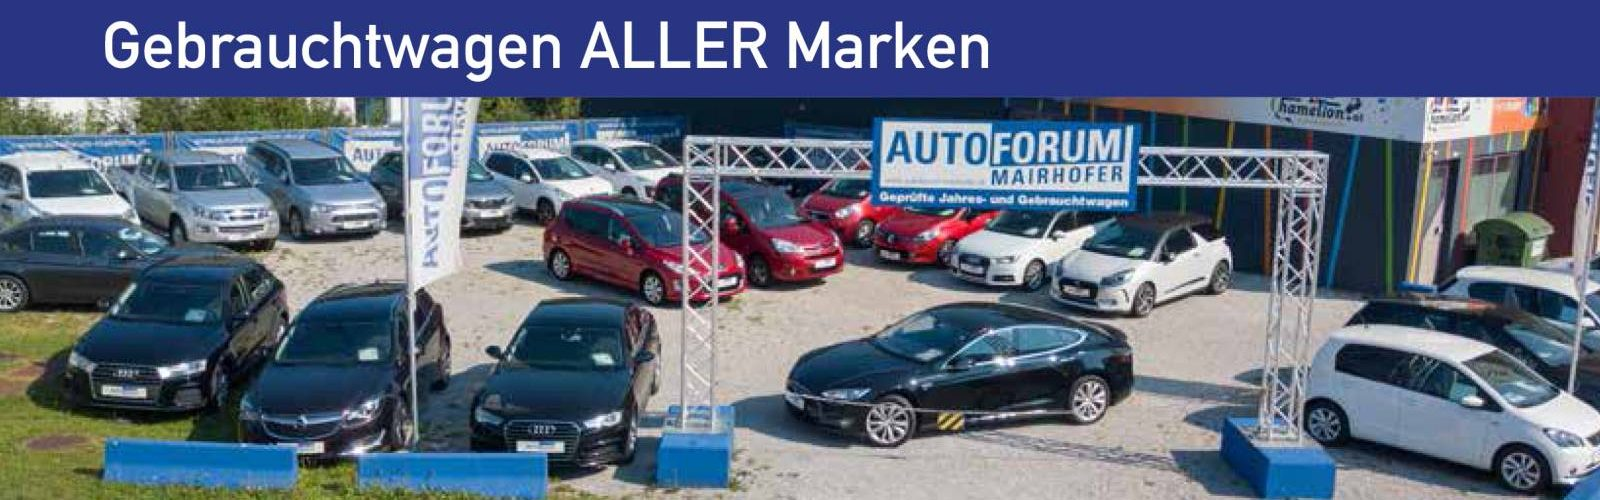 bei Autoforum Mairhofer in